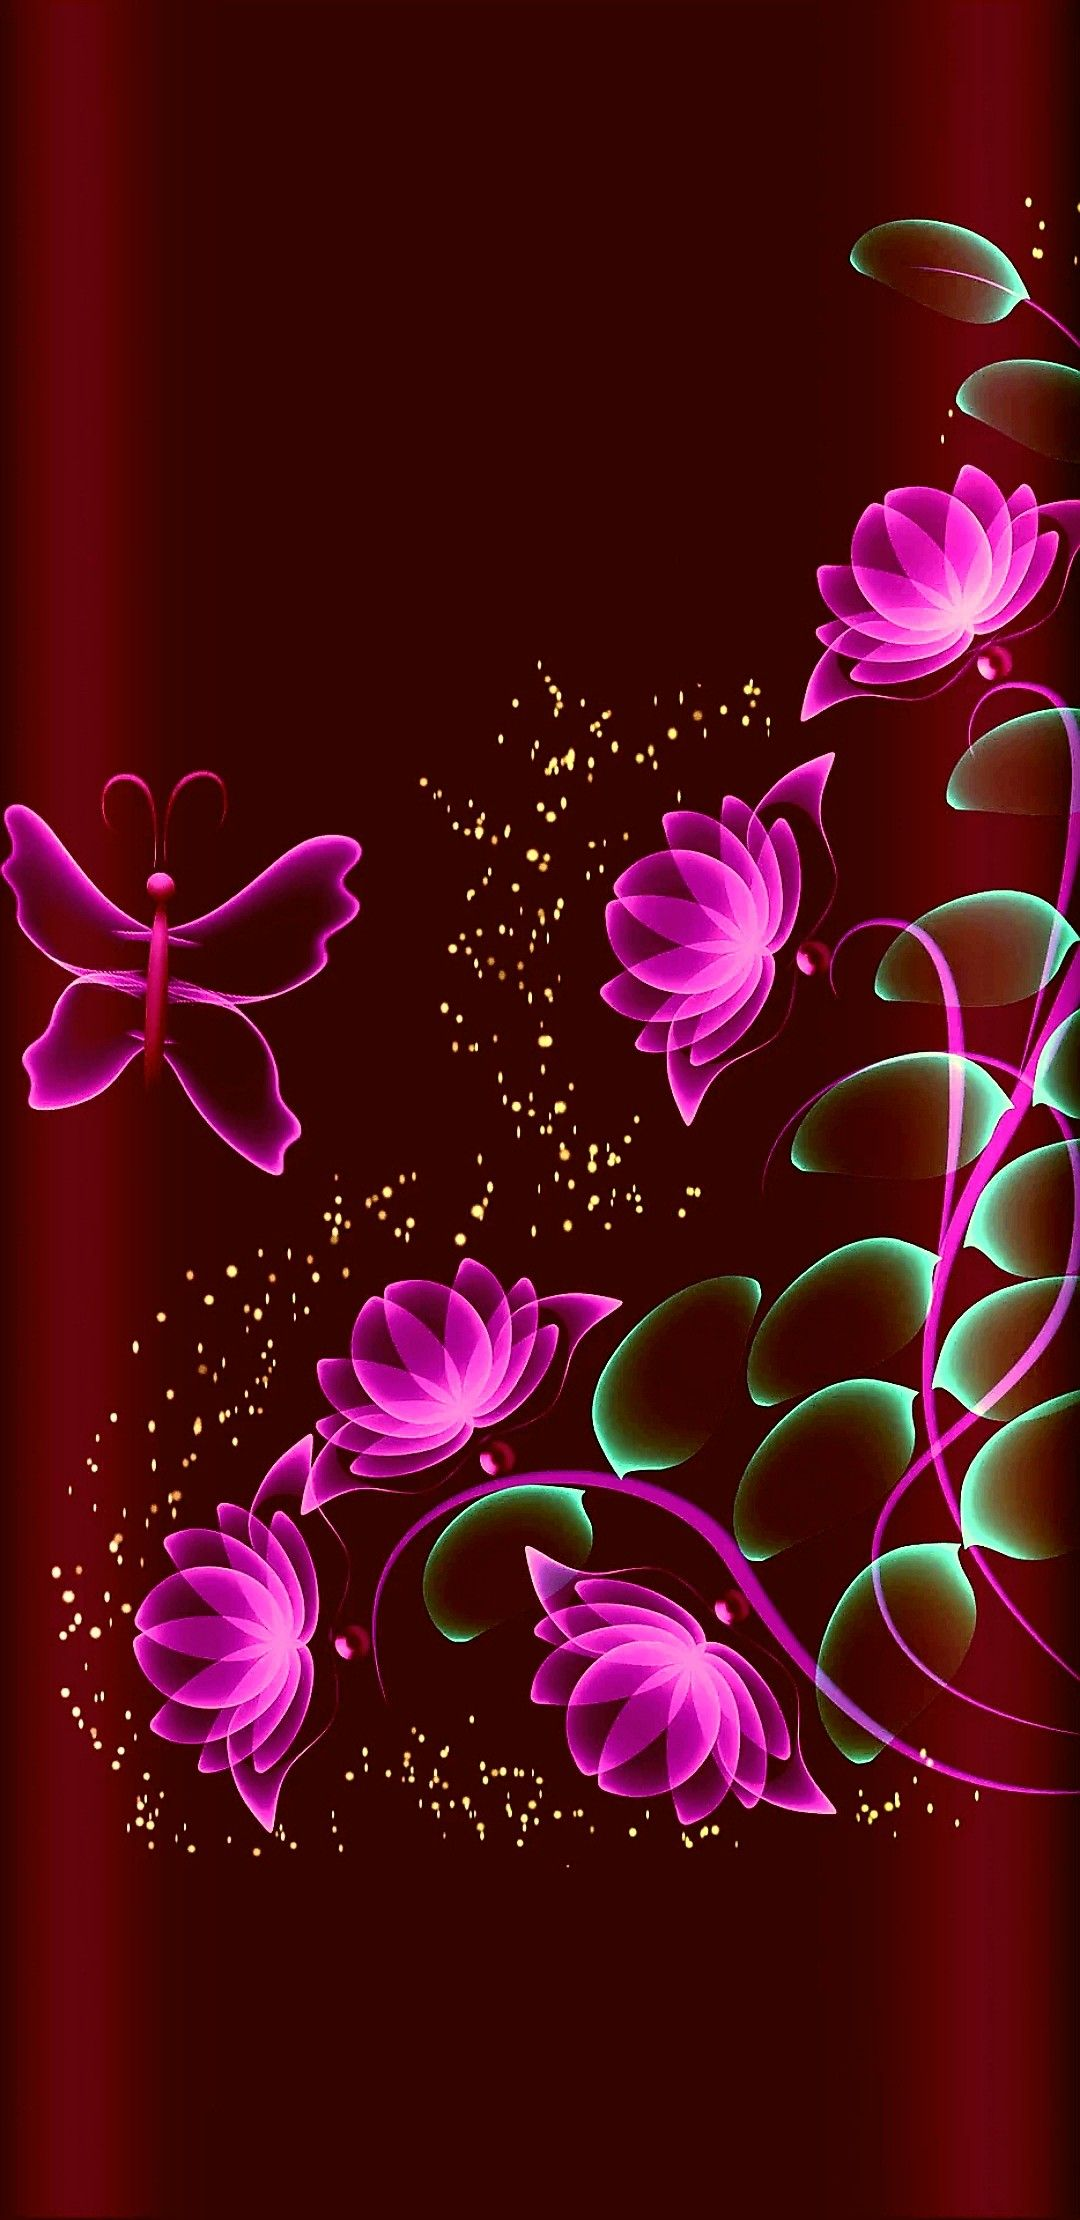 background (With images) | Butterfly wallpaper, Cellphone ...